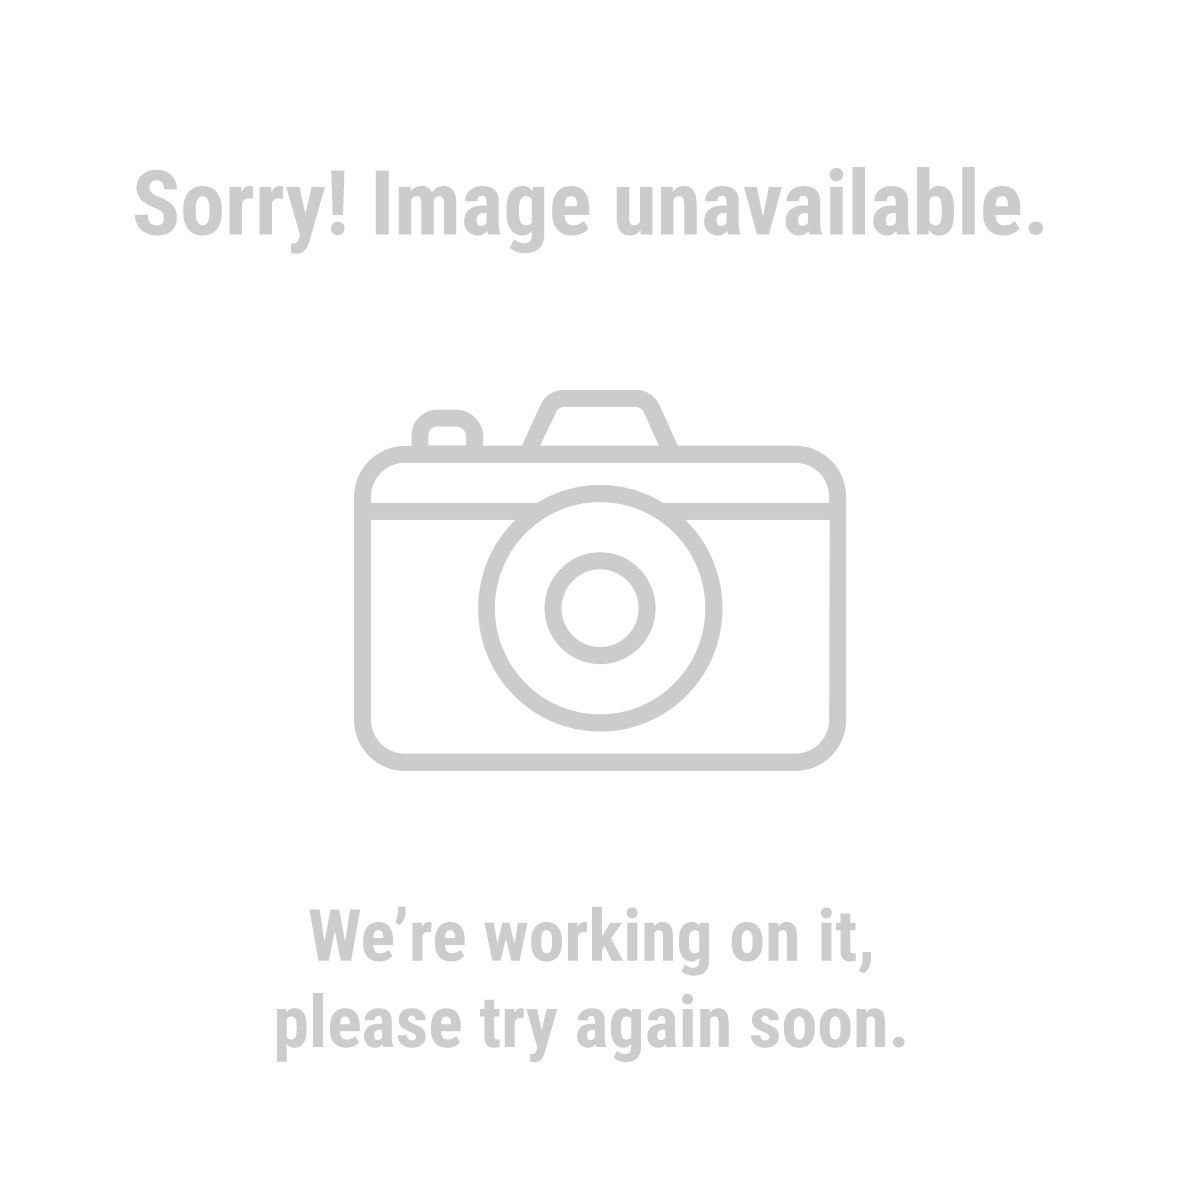 Chicago Electric 12 Miter Saw Review